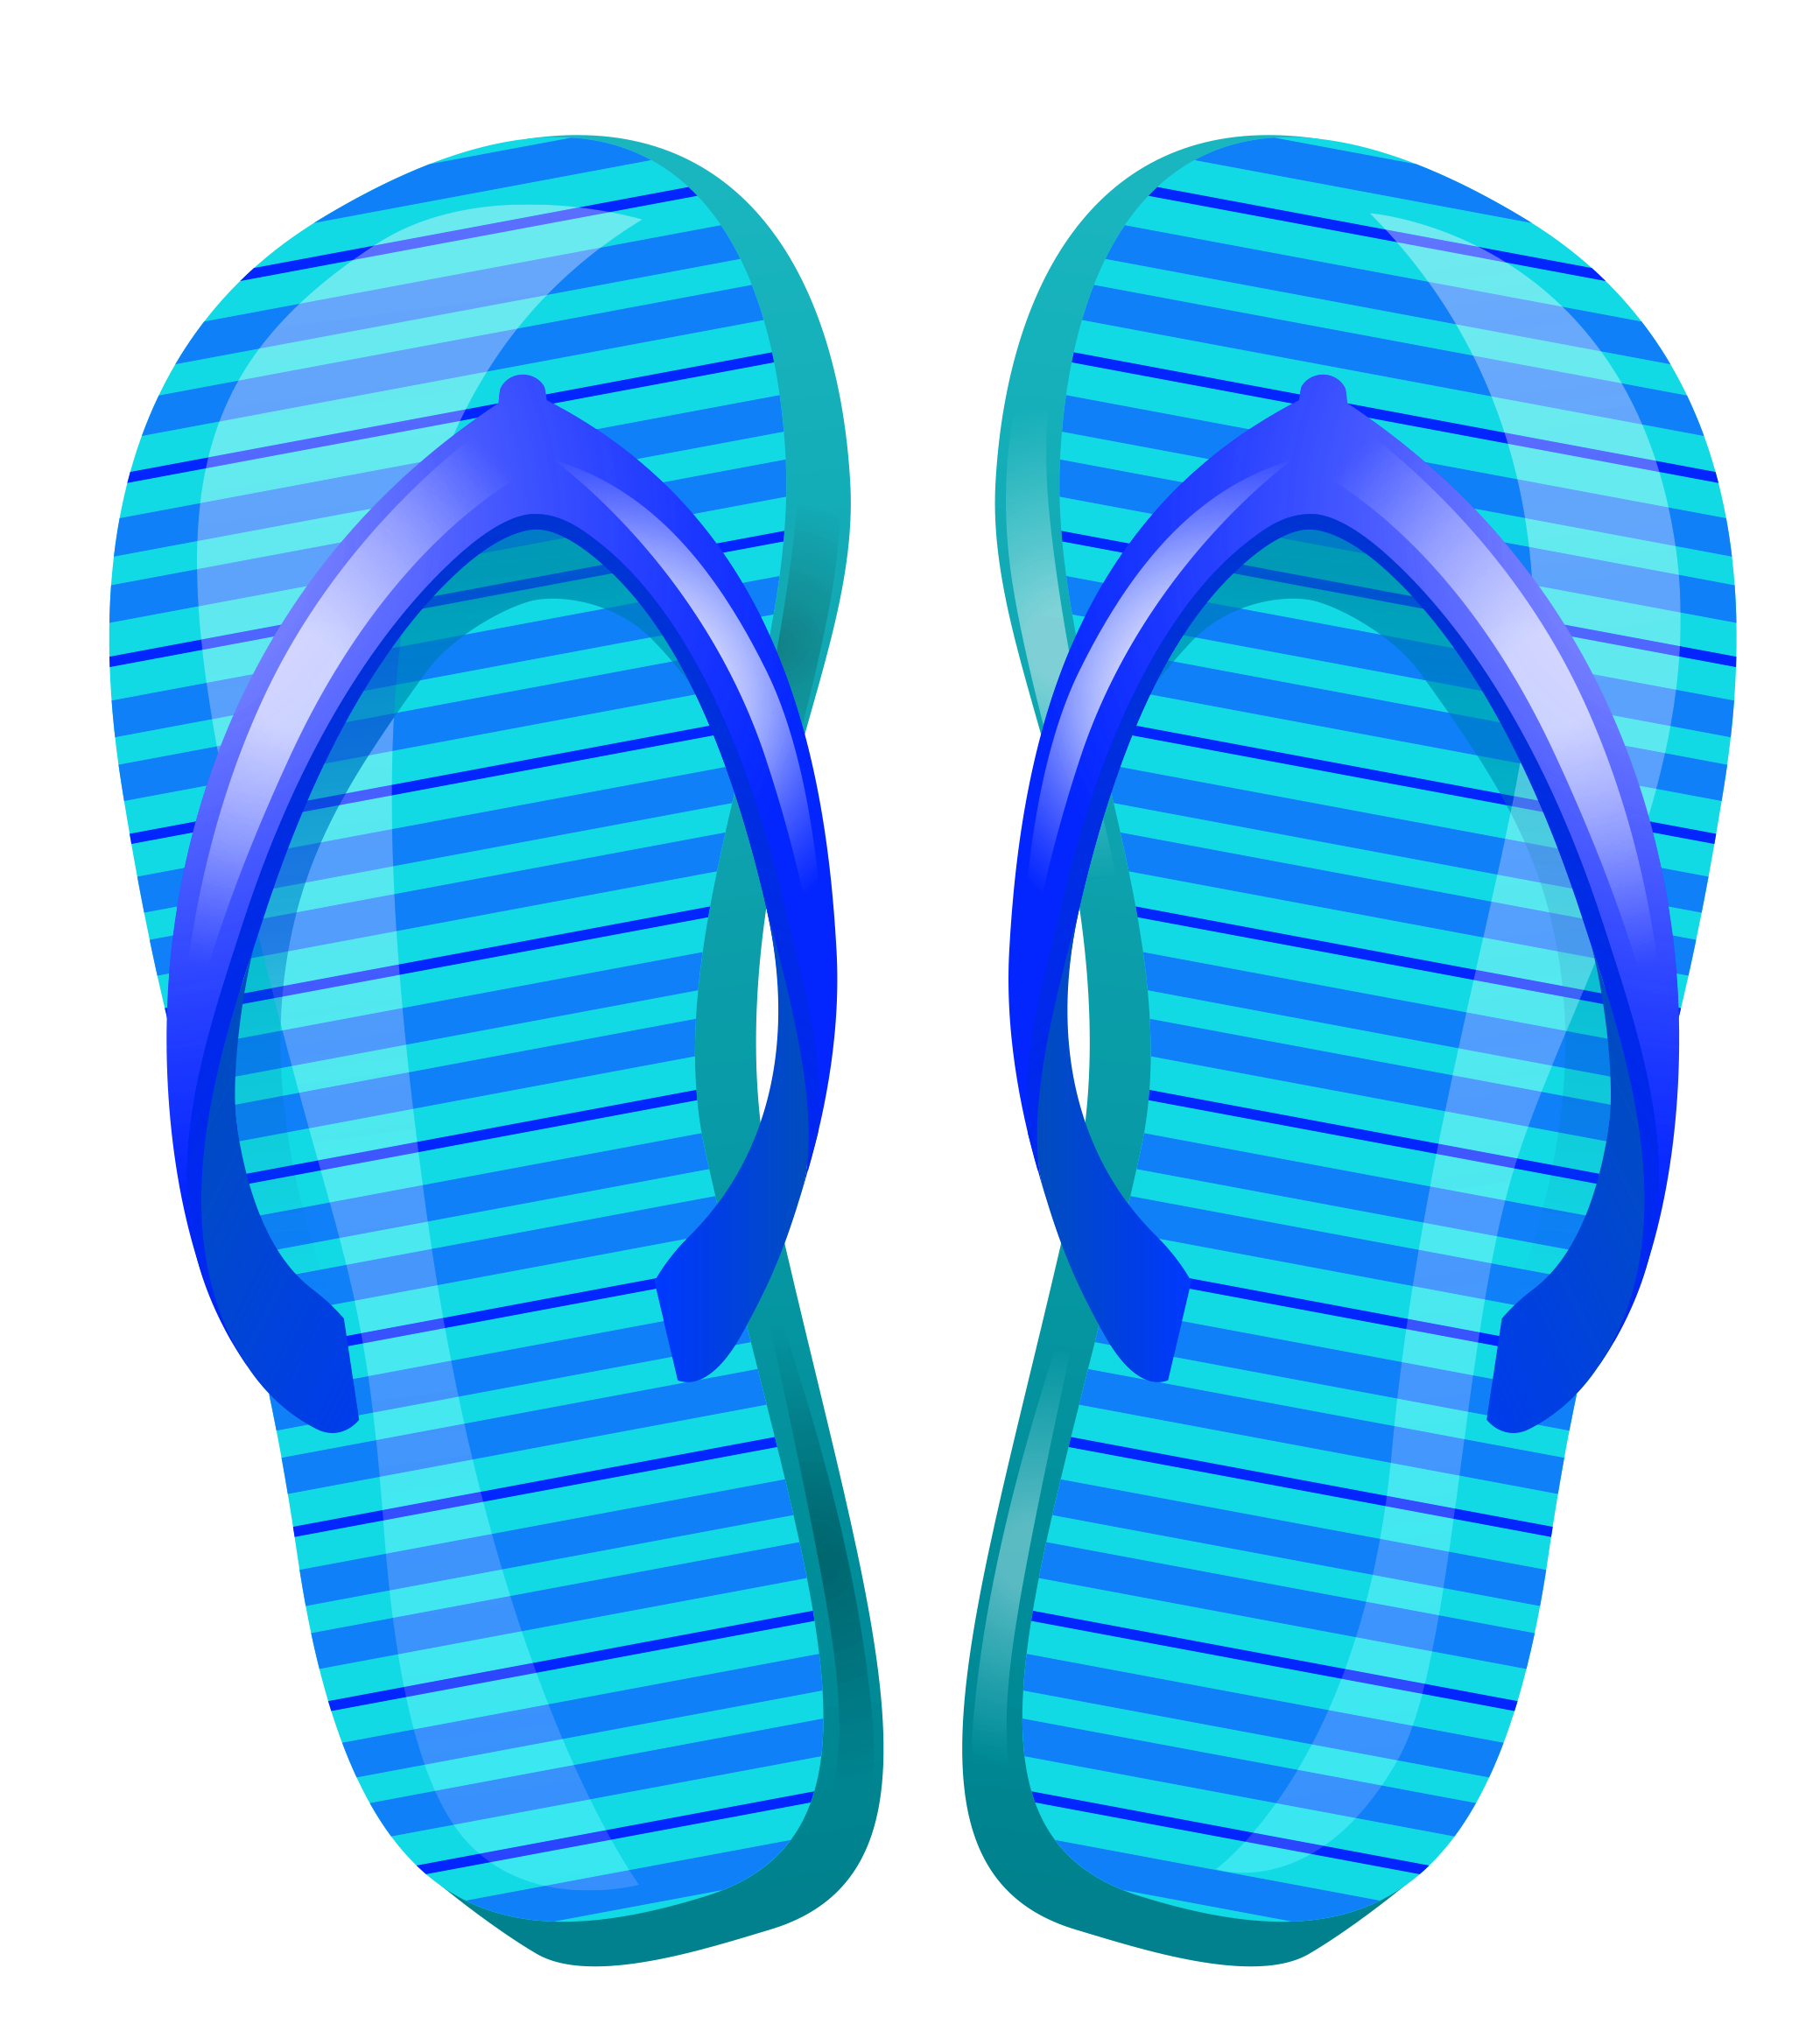 Flip flops clip art at clker vector.